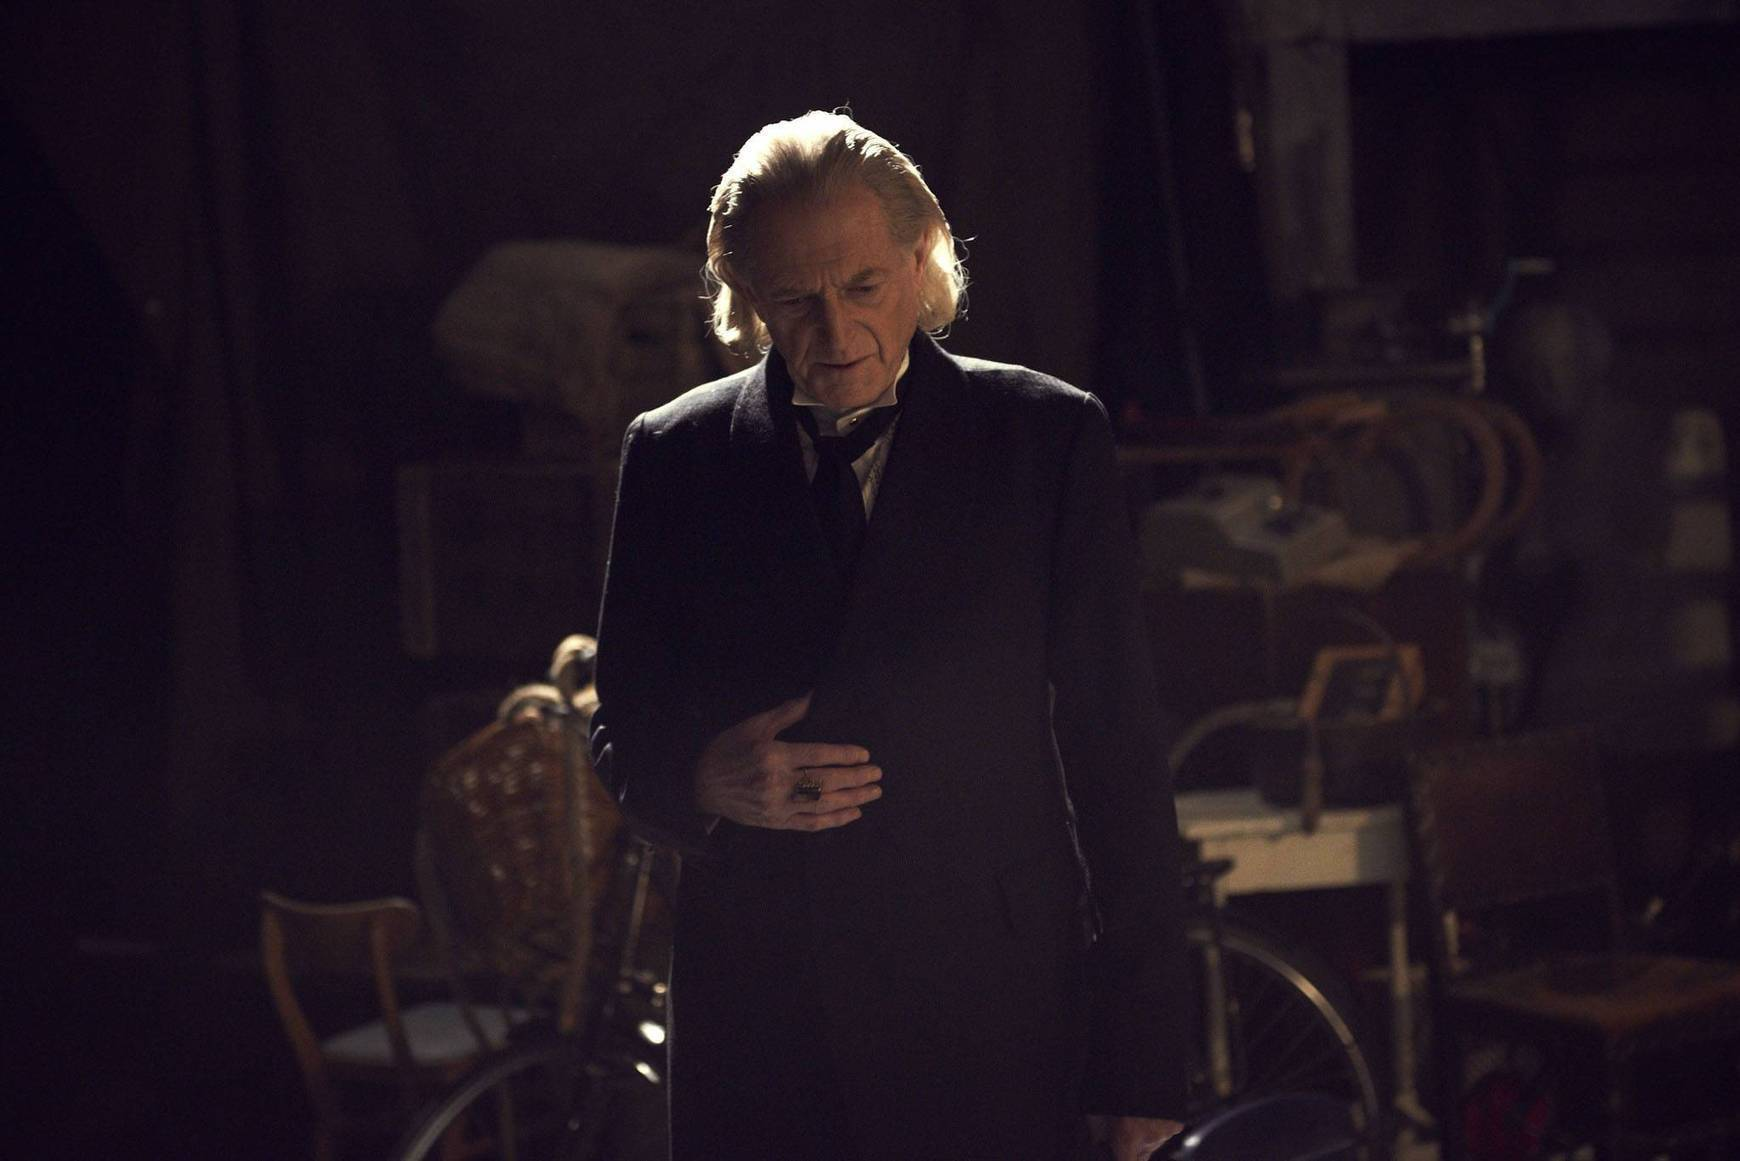 Doctor Who 50th anniversary: New drama 'An Adventure in Space and Time' to air week before anniversary special